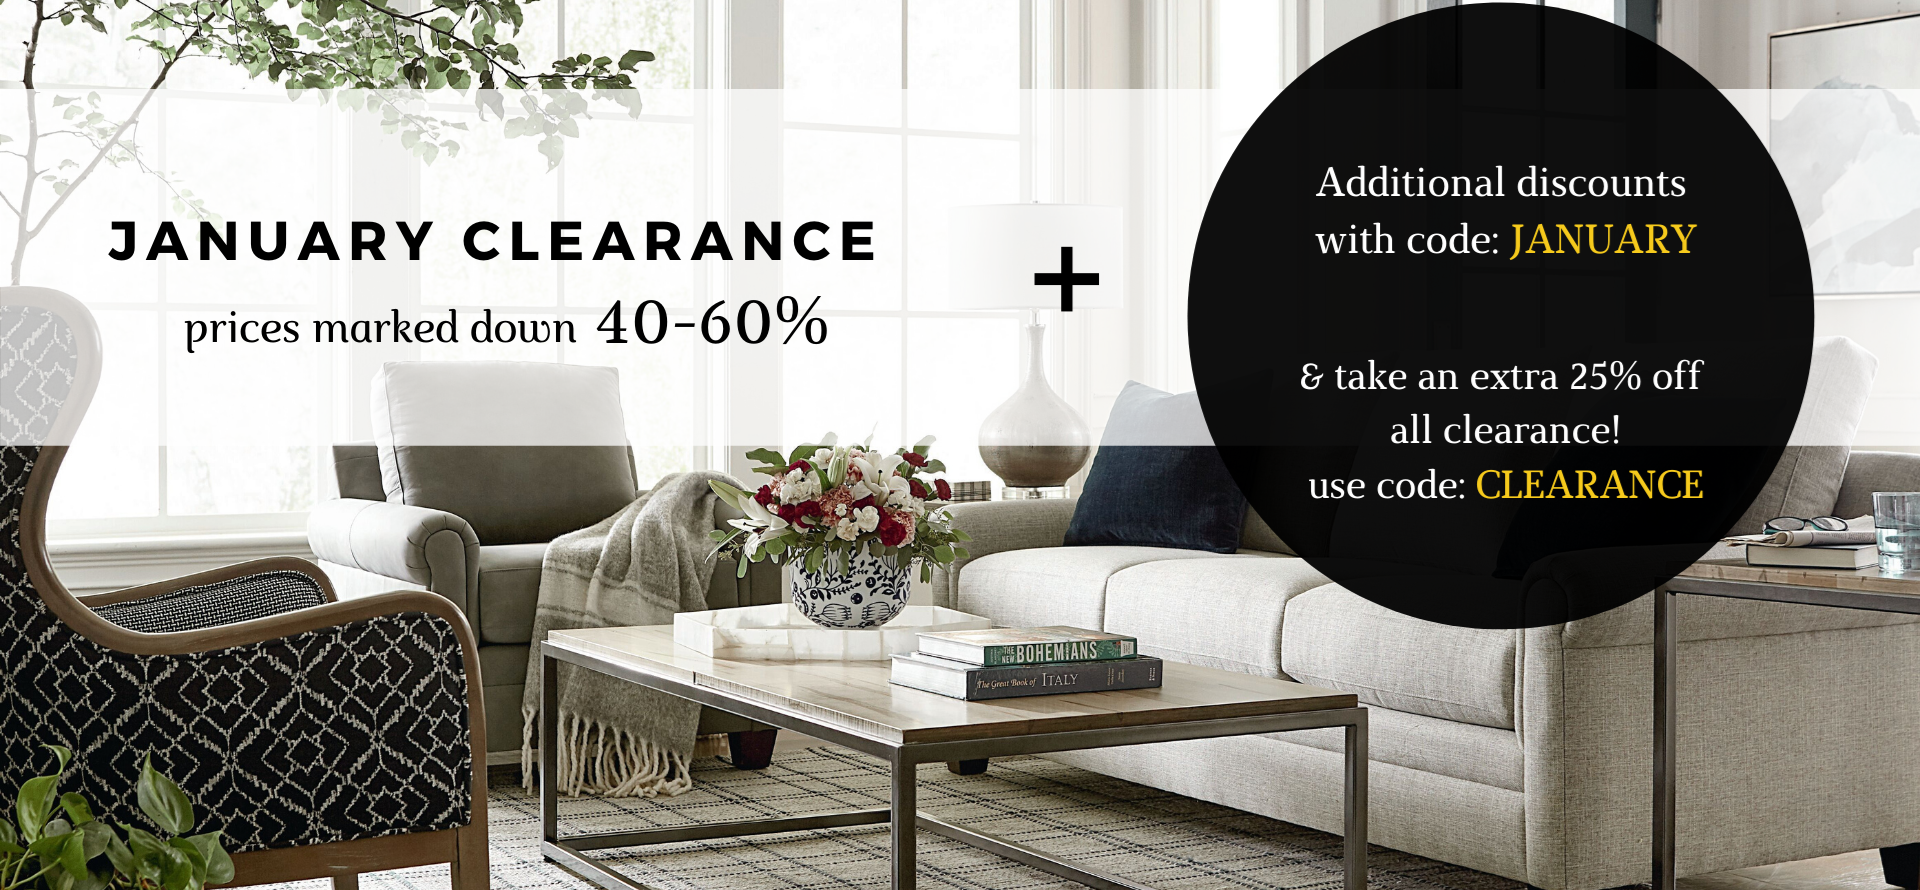 January Clearance Images